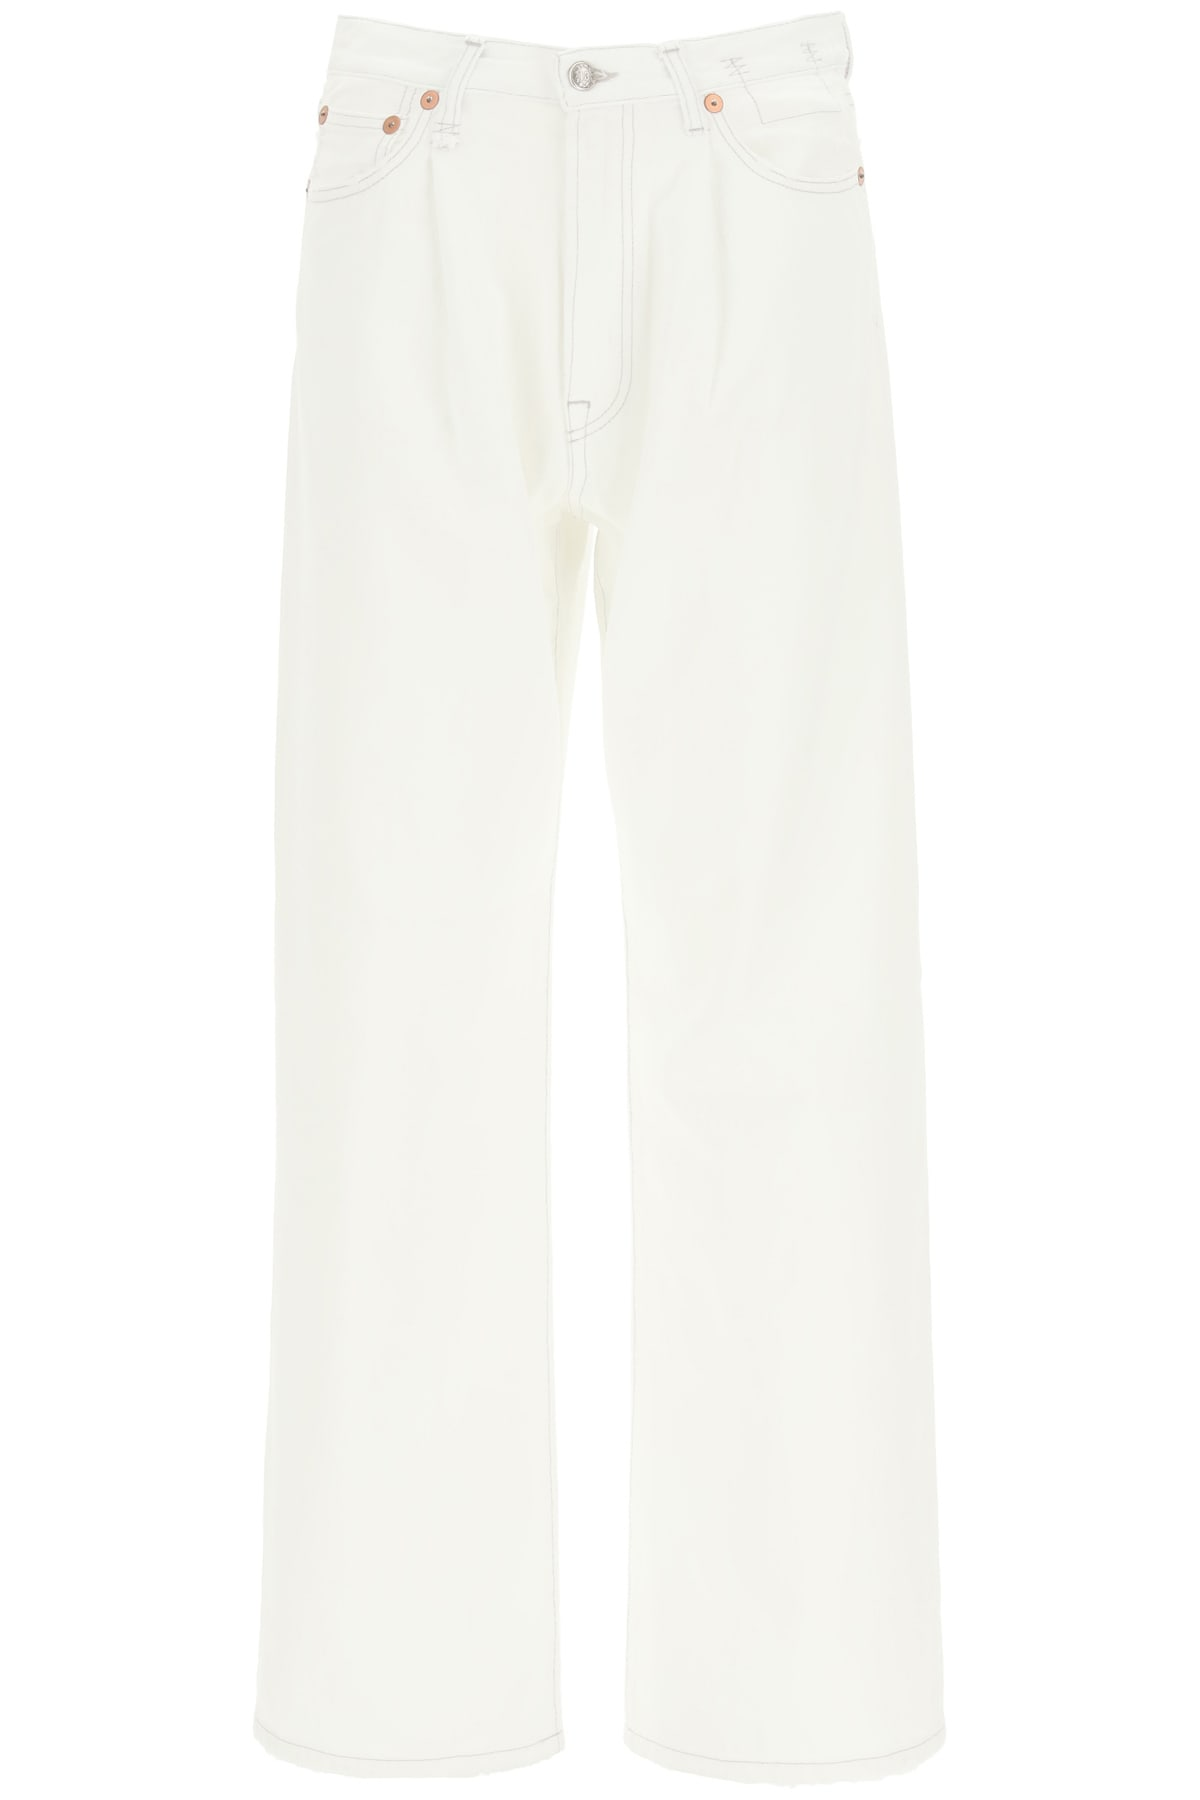 R13 Cottons DAMON JEANS WITH DARTS